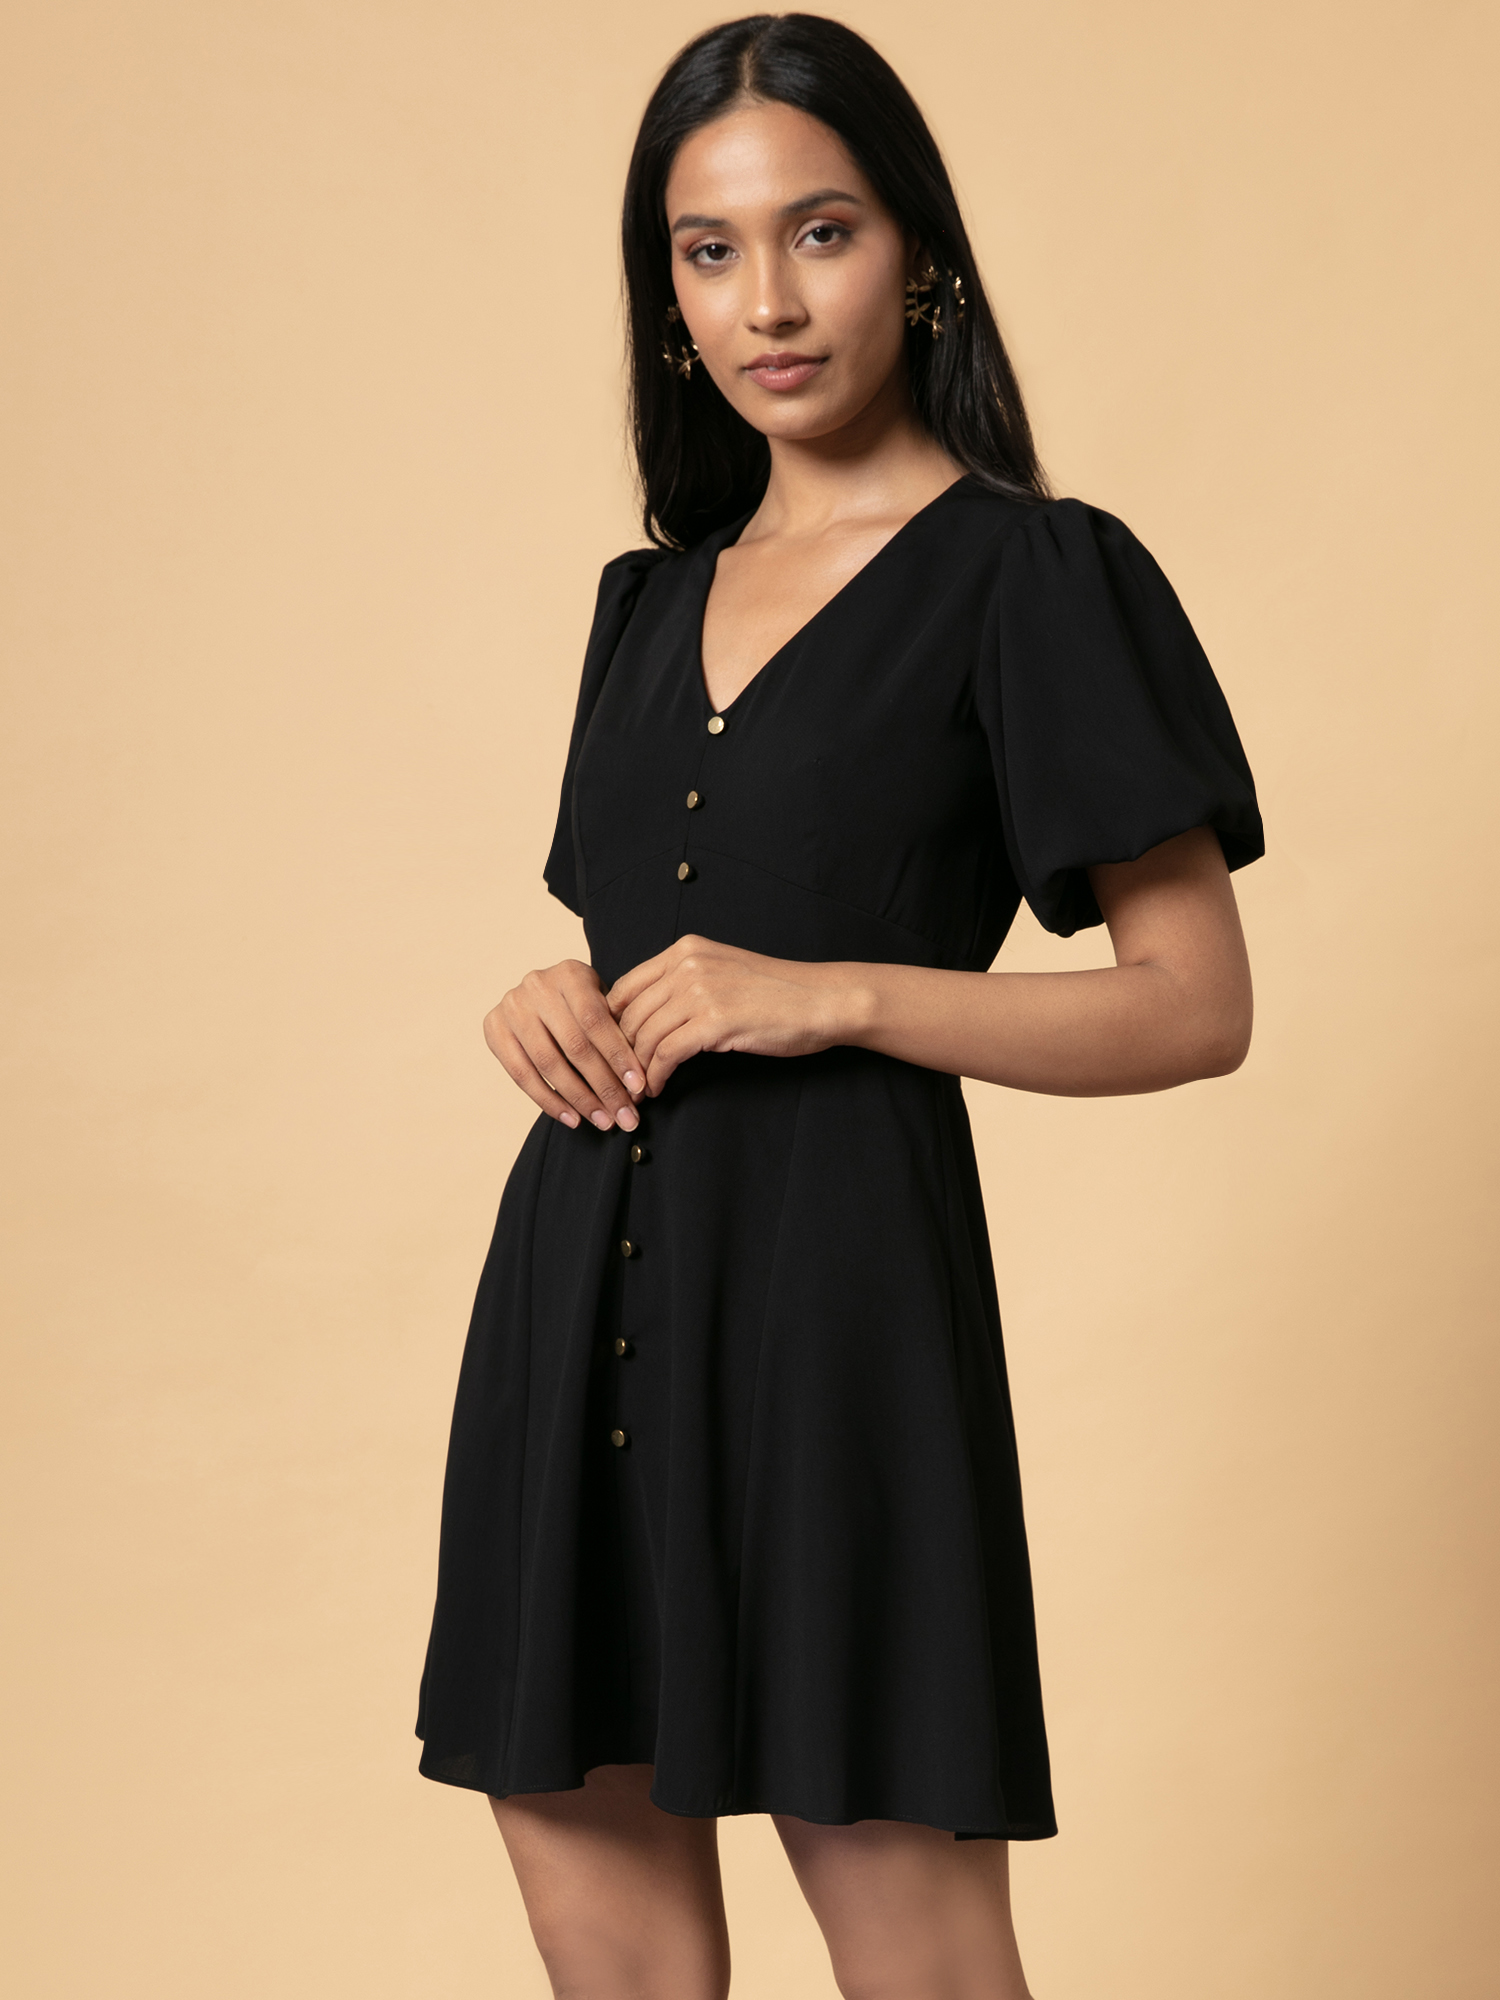 Dresses-You Are Perfection Dress3